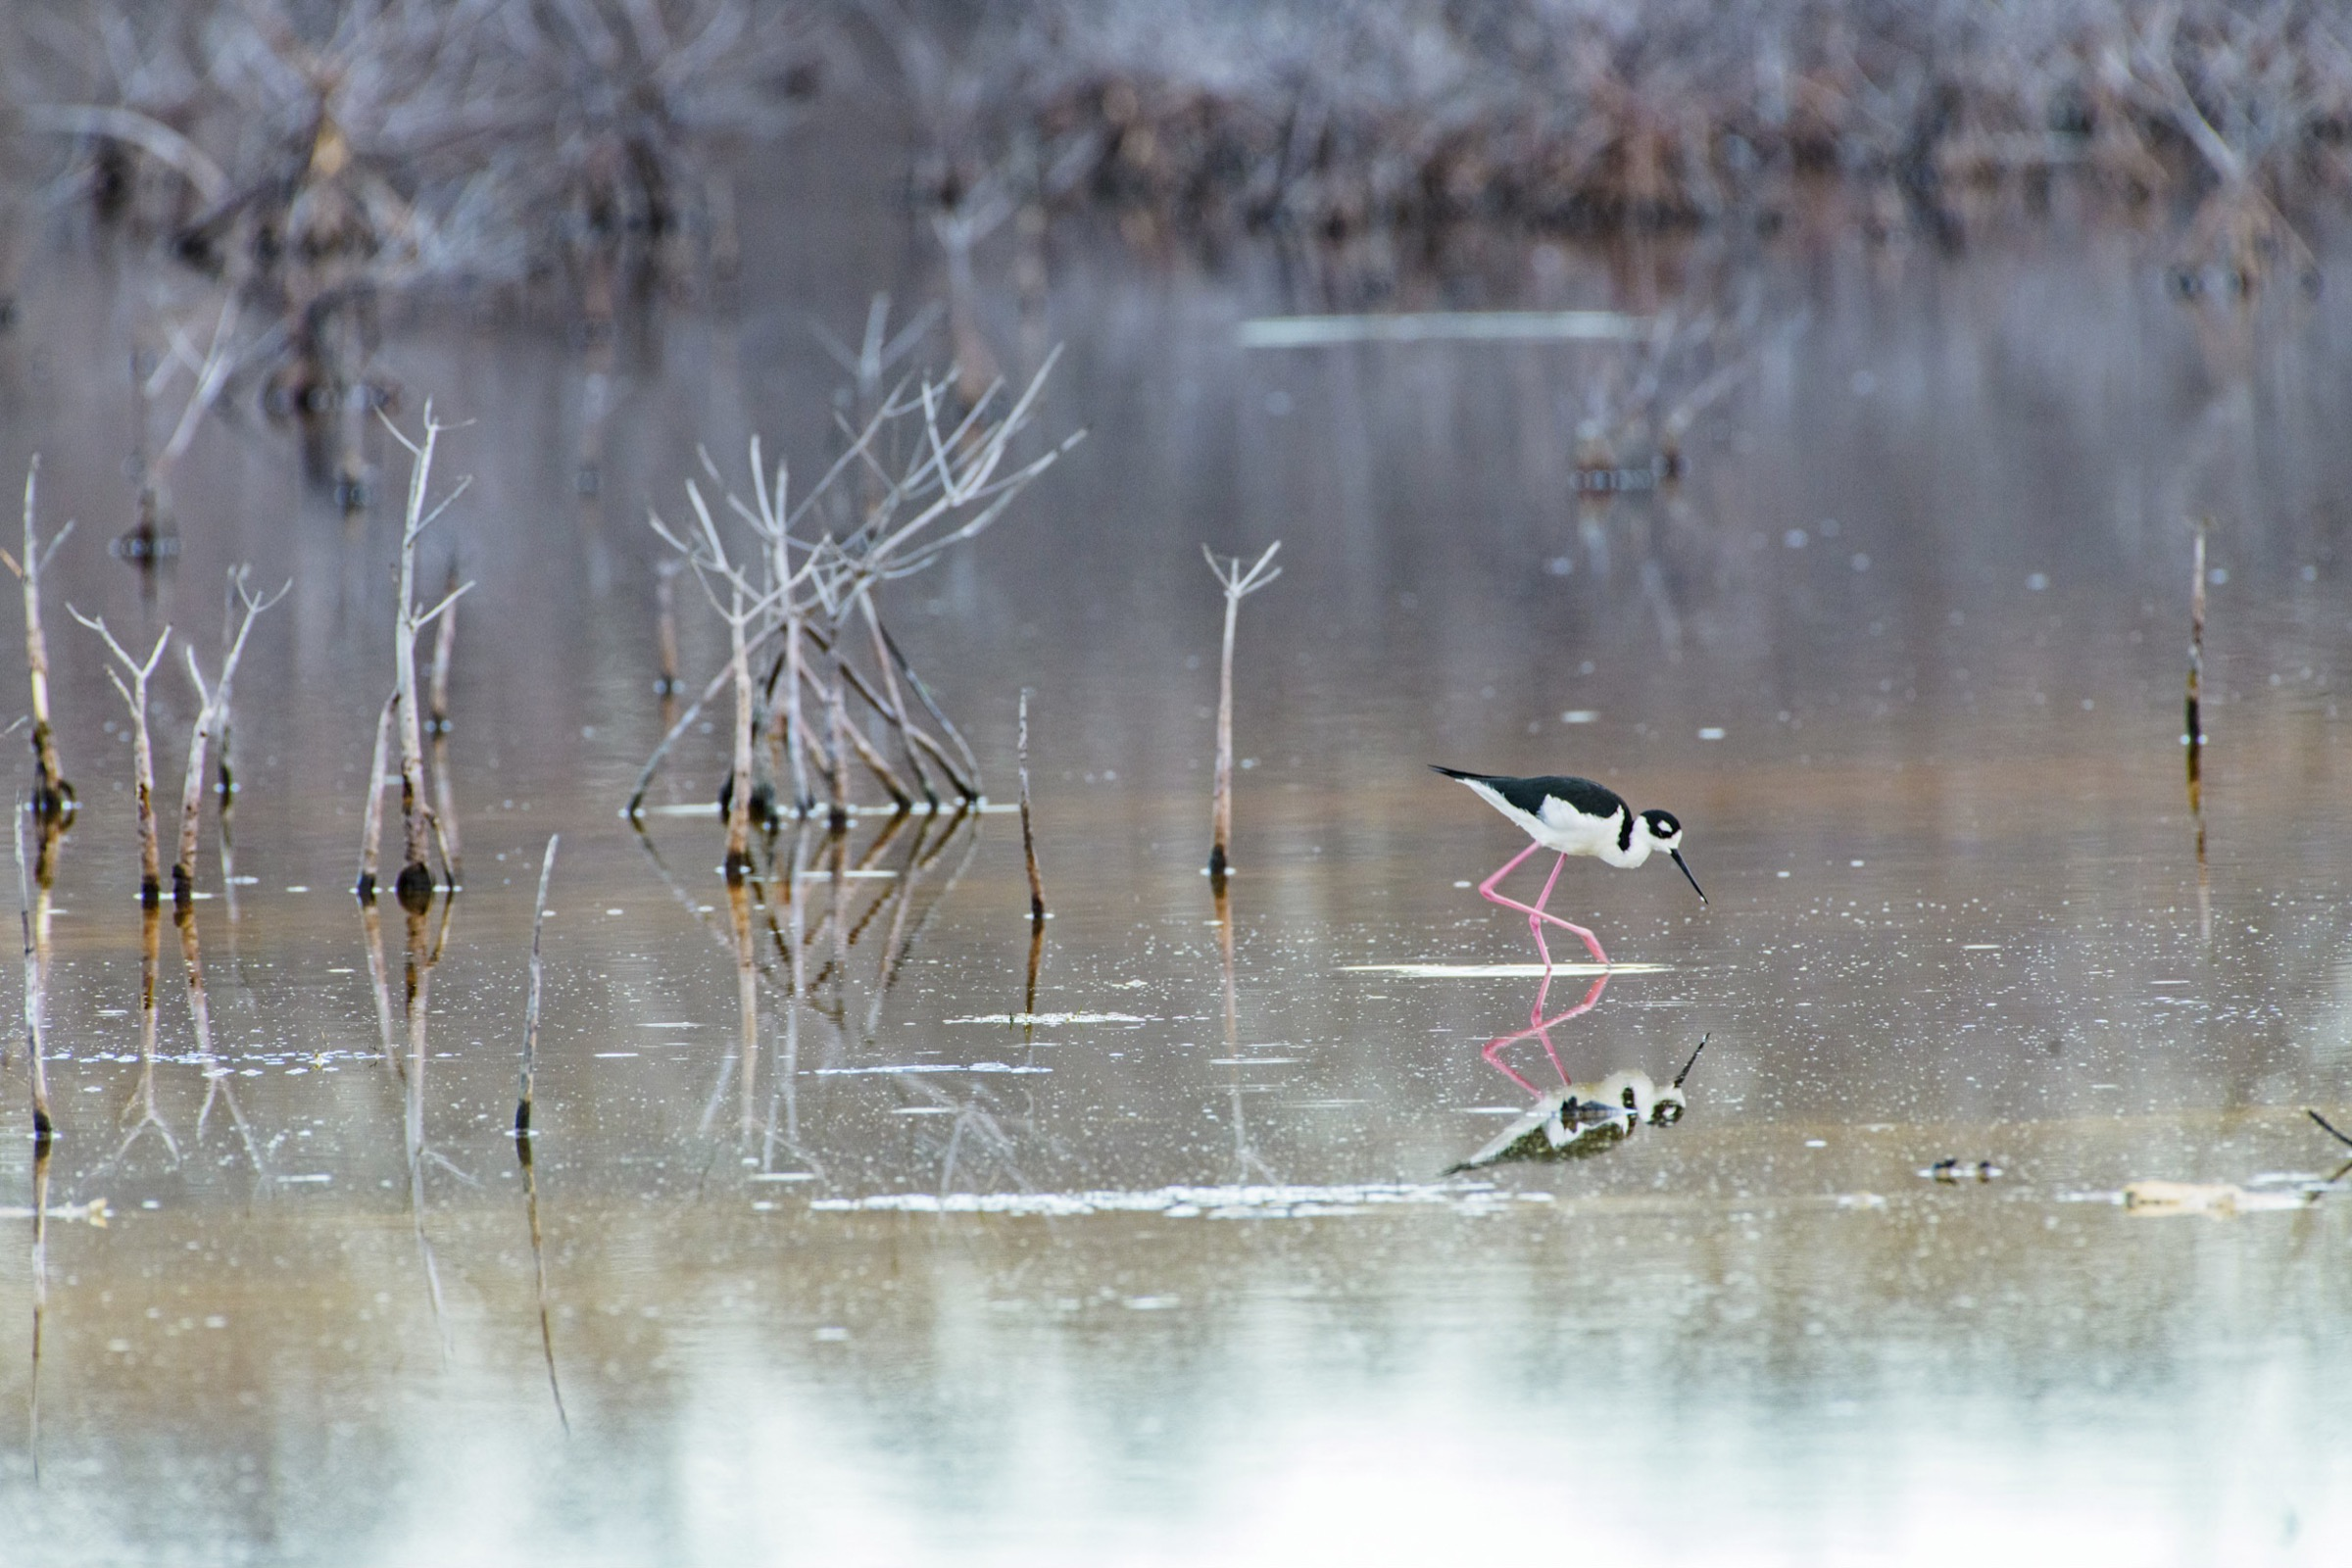 Ciénaga de Zapata National Park is a biosphere reserve, RAMSAR site, and one of the largest wetlands in the Caribbean. This black-winged stilt (<em>Himantopus himantopus</em>) feeding at low tide is one of nearly 200 species of birds found here.